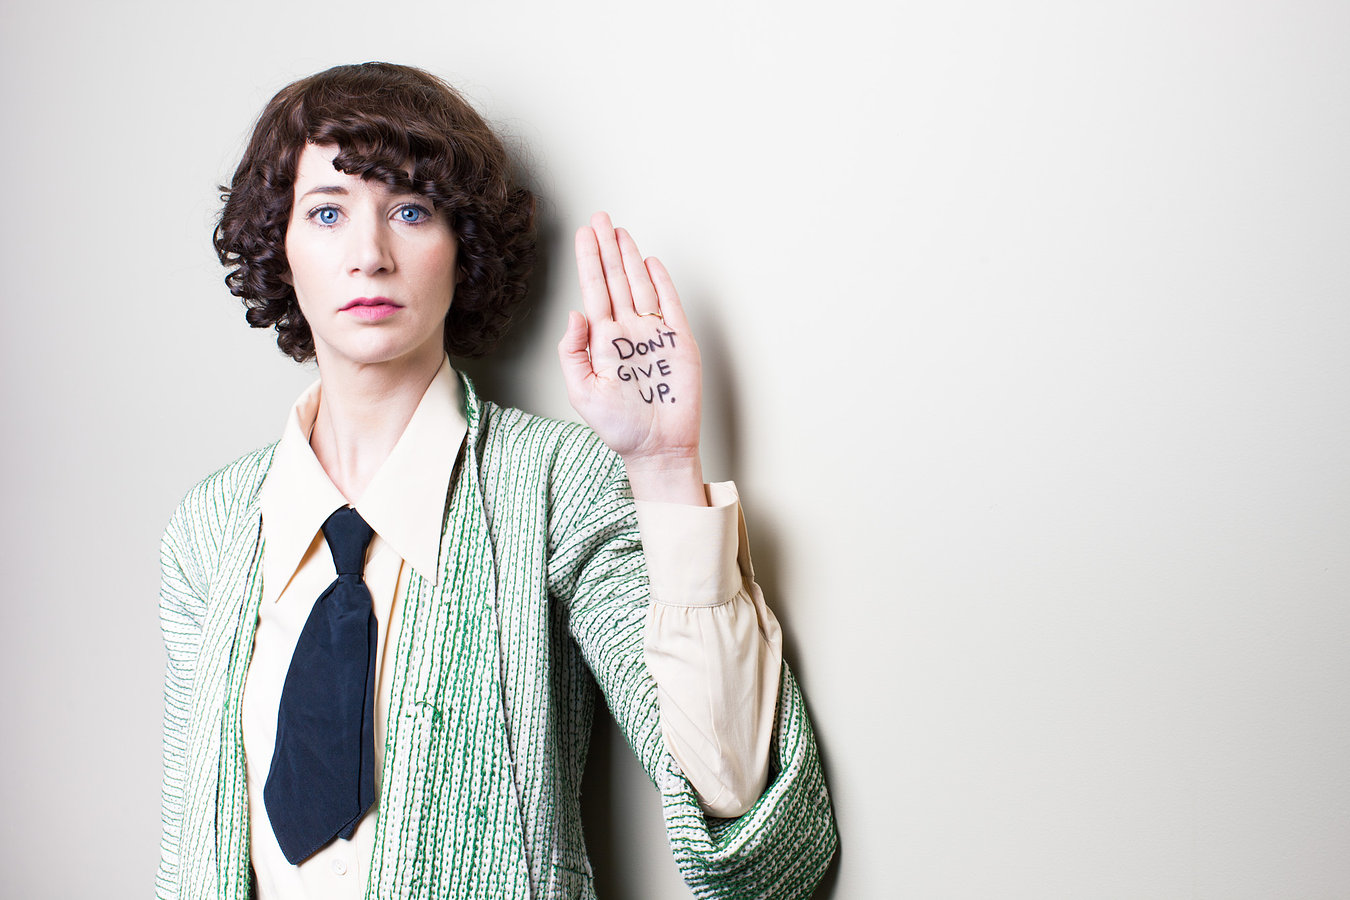 3 reasons to soak up some inspiration from Miranda July